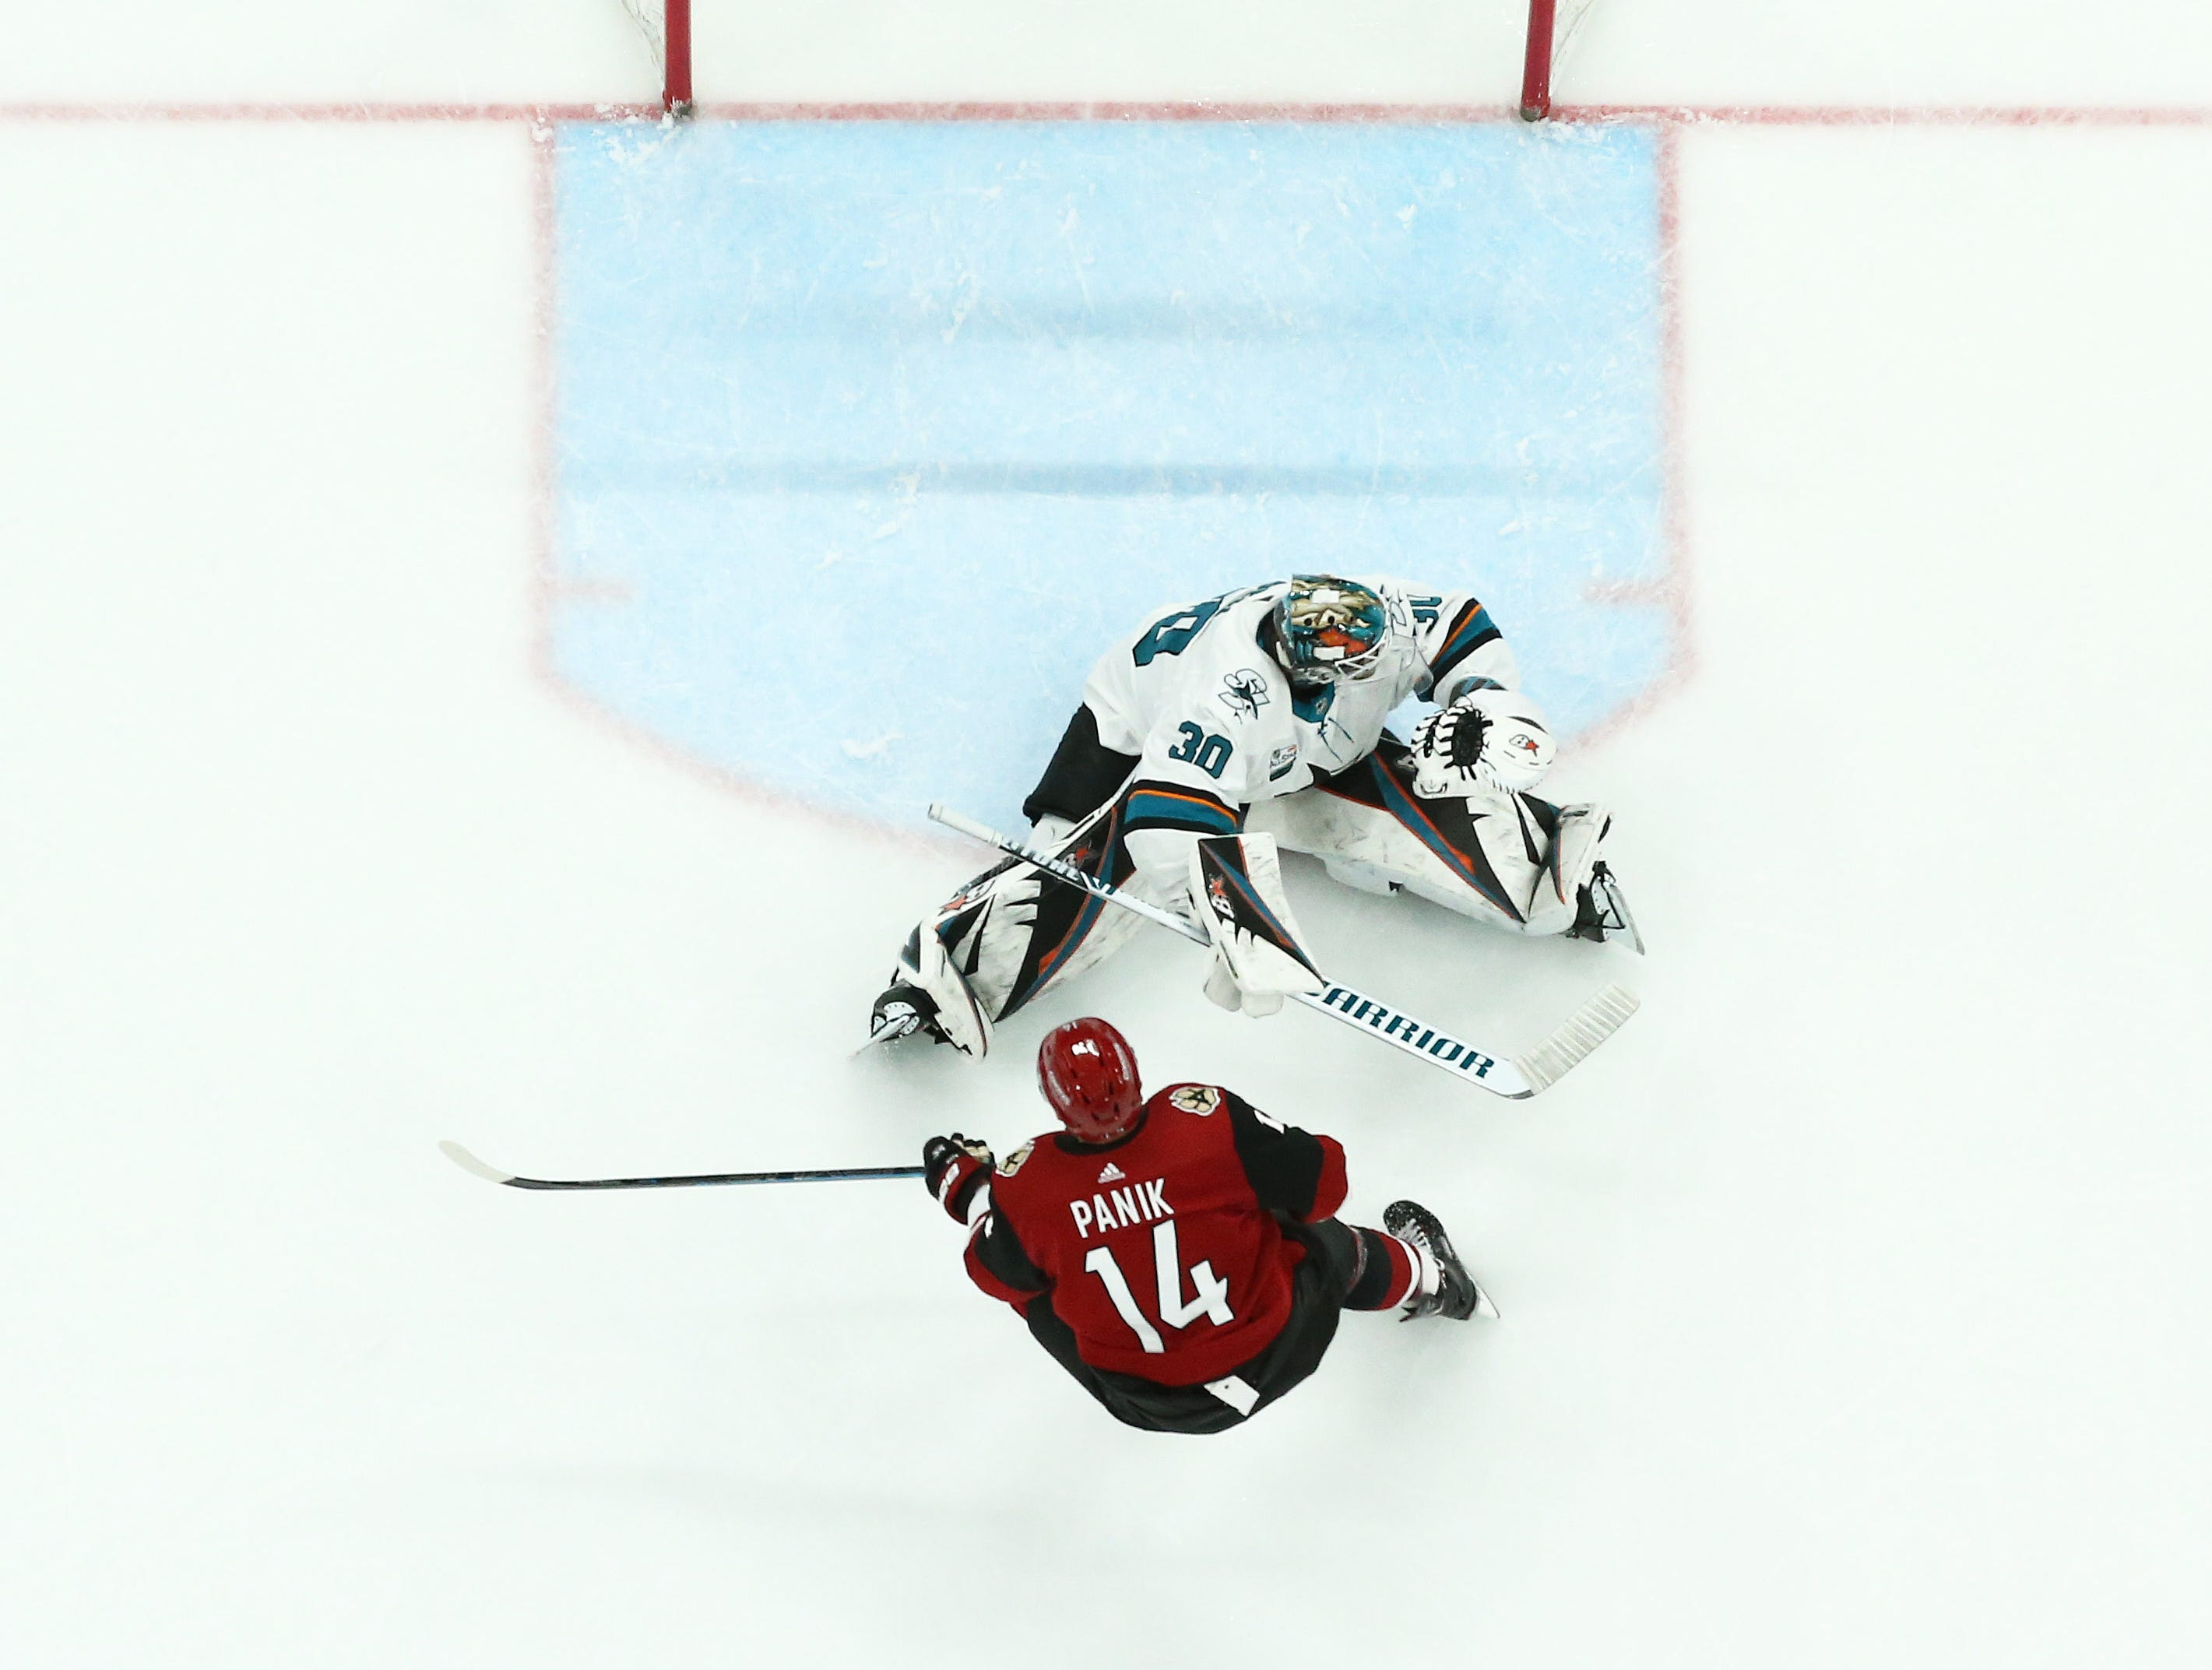 Arizona Coyotes' Richard Panik (14) scores against San Jose Sharks goalie Aaron Dell in the first period on Jan. 16 at Gila River Arena.